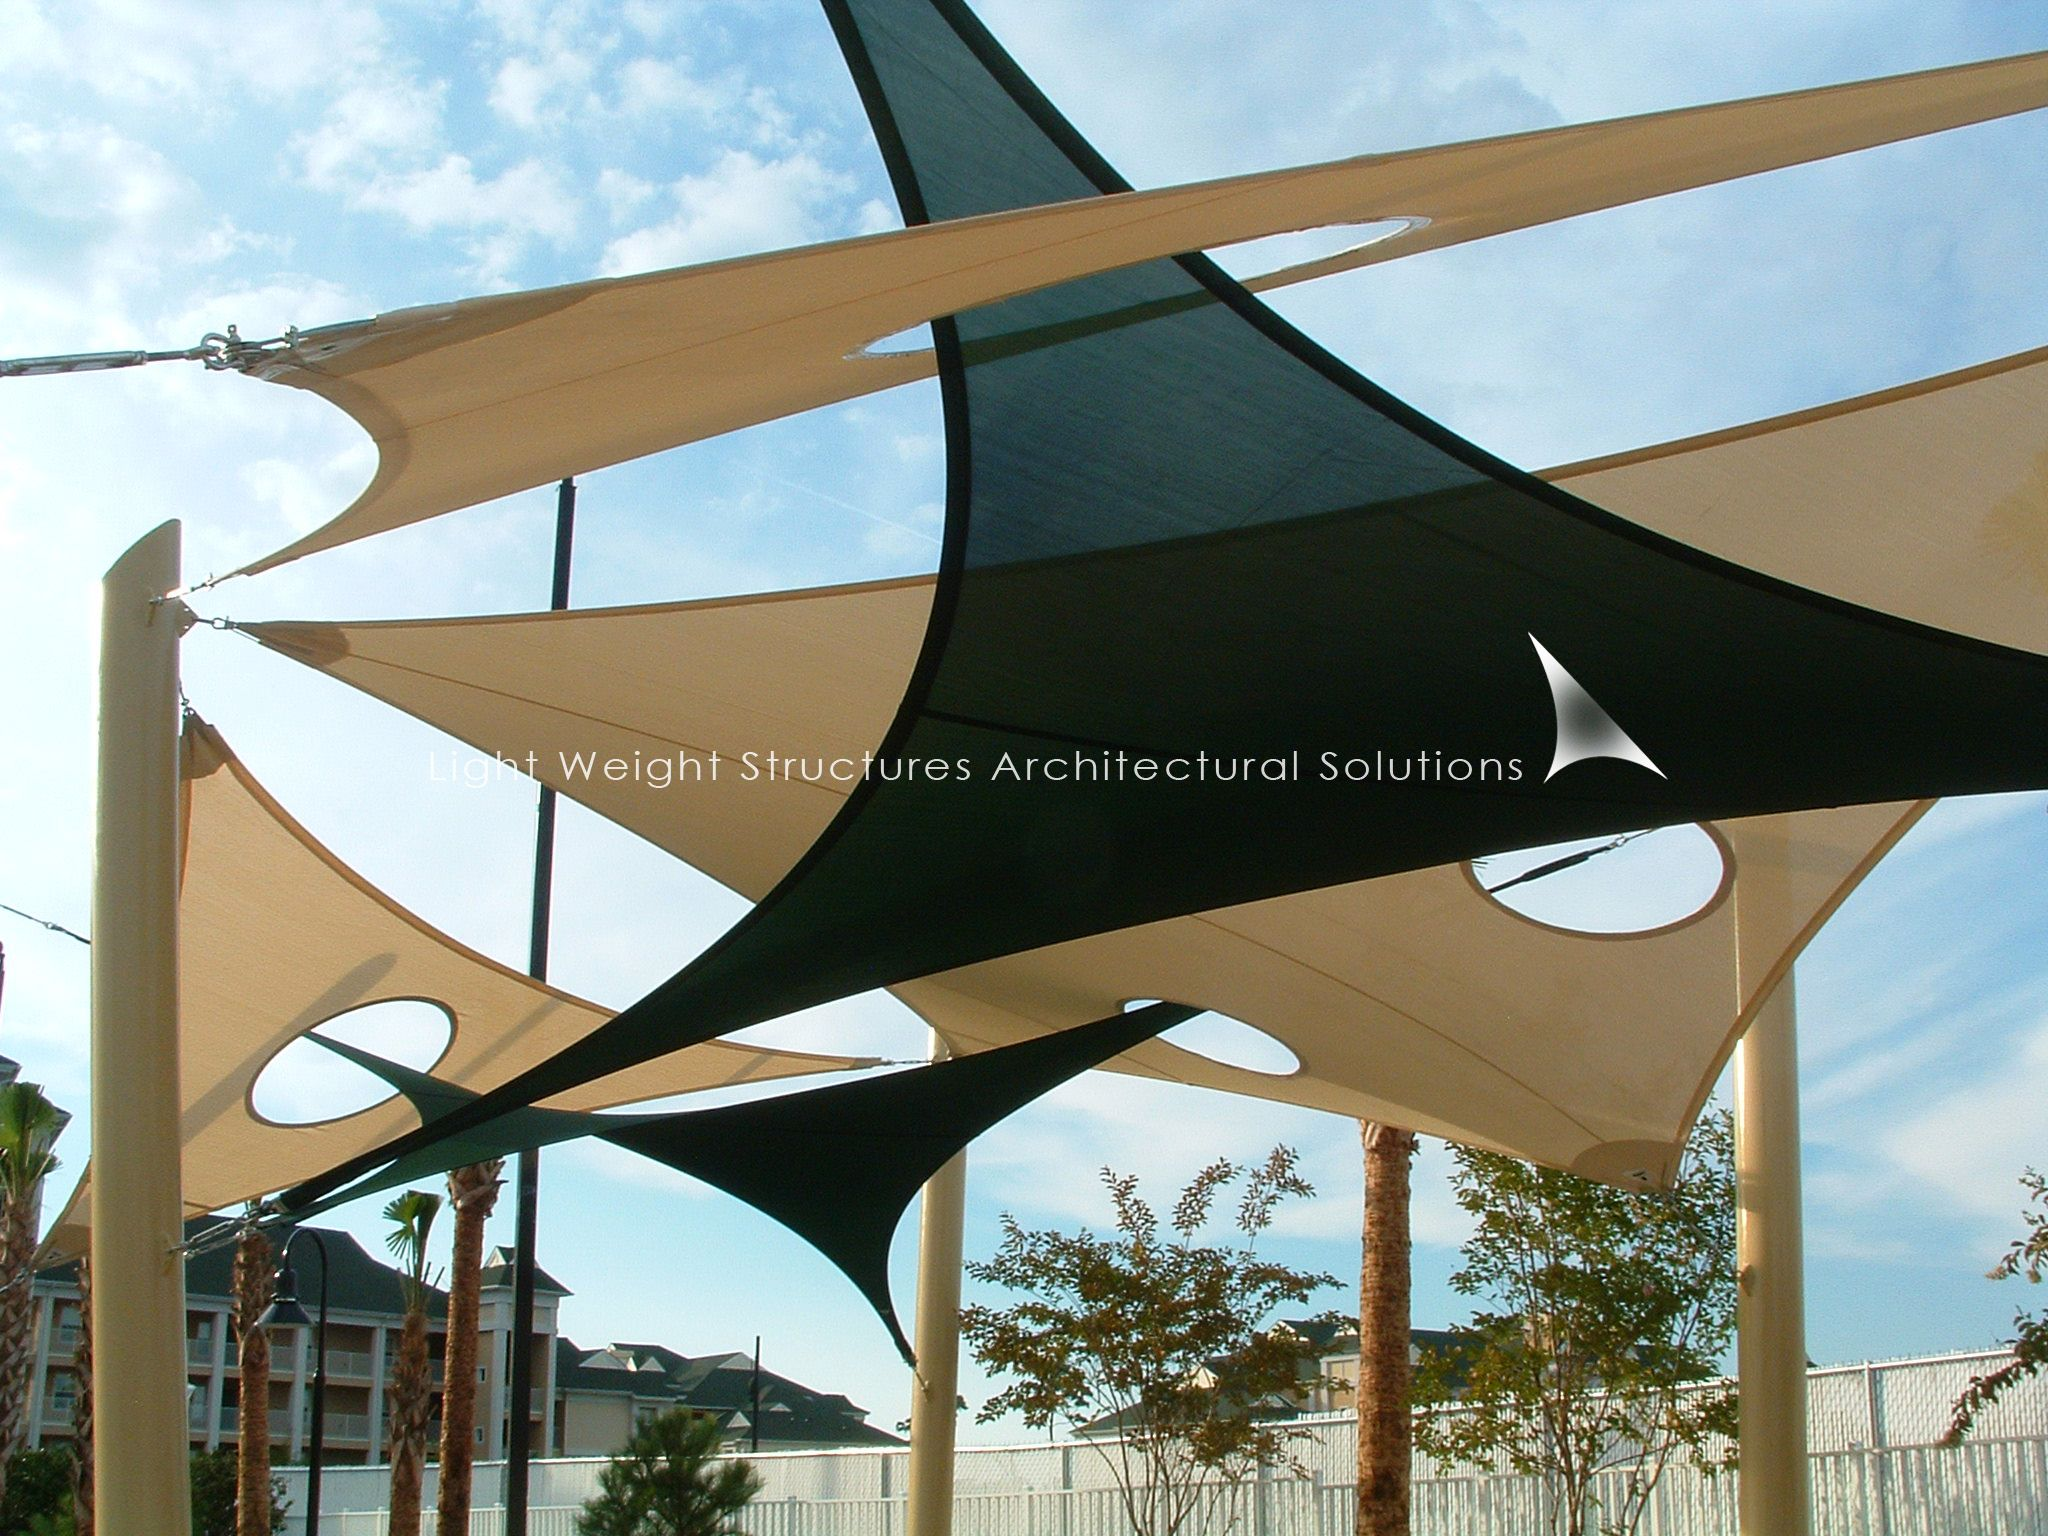 Pin by heather lewis on canopies awnings umbrellas pinterest shade structure architecture and public spaces